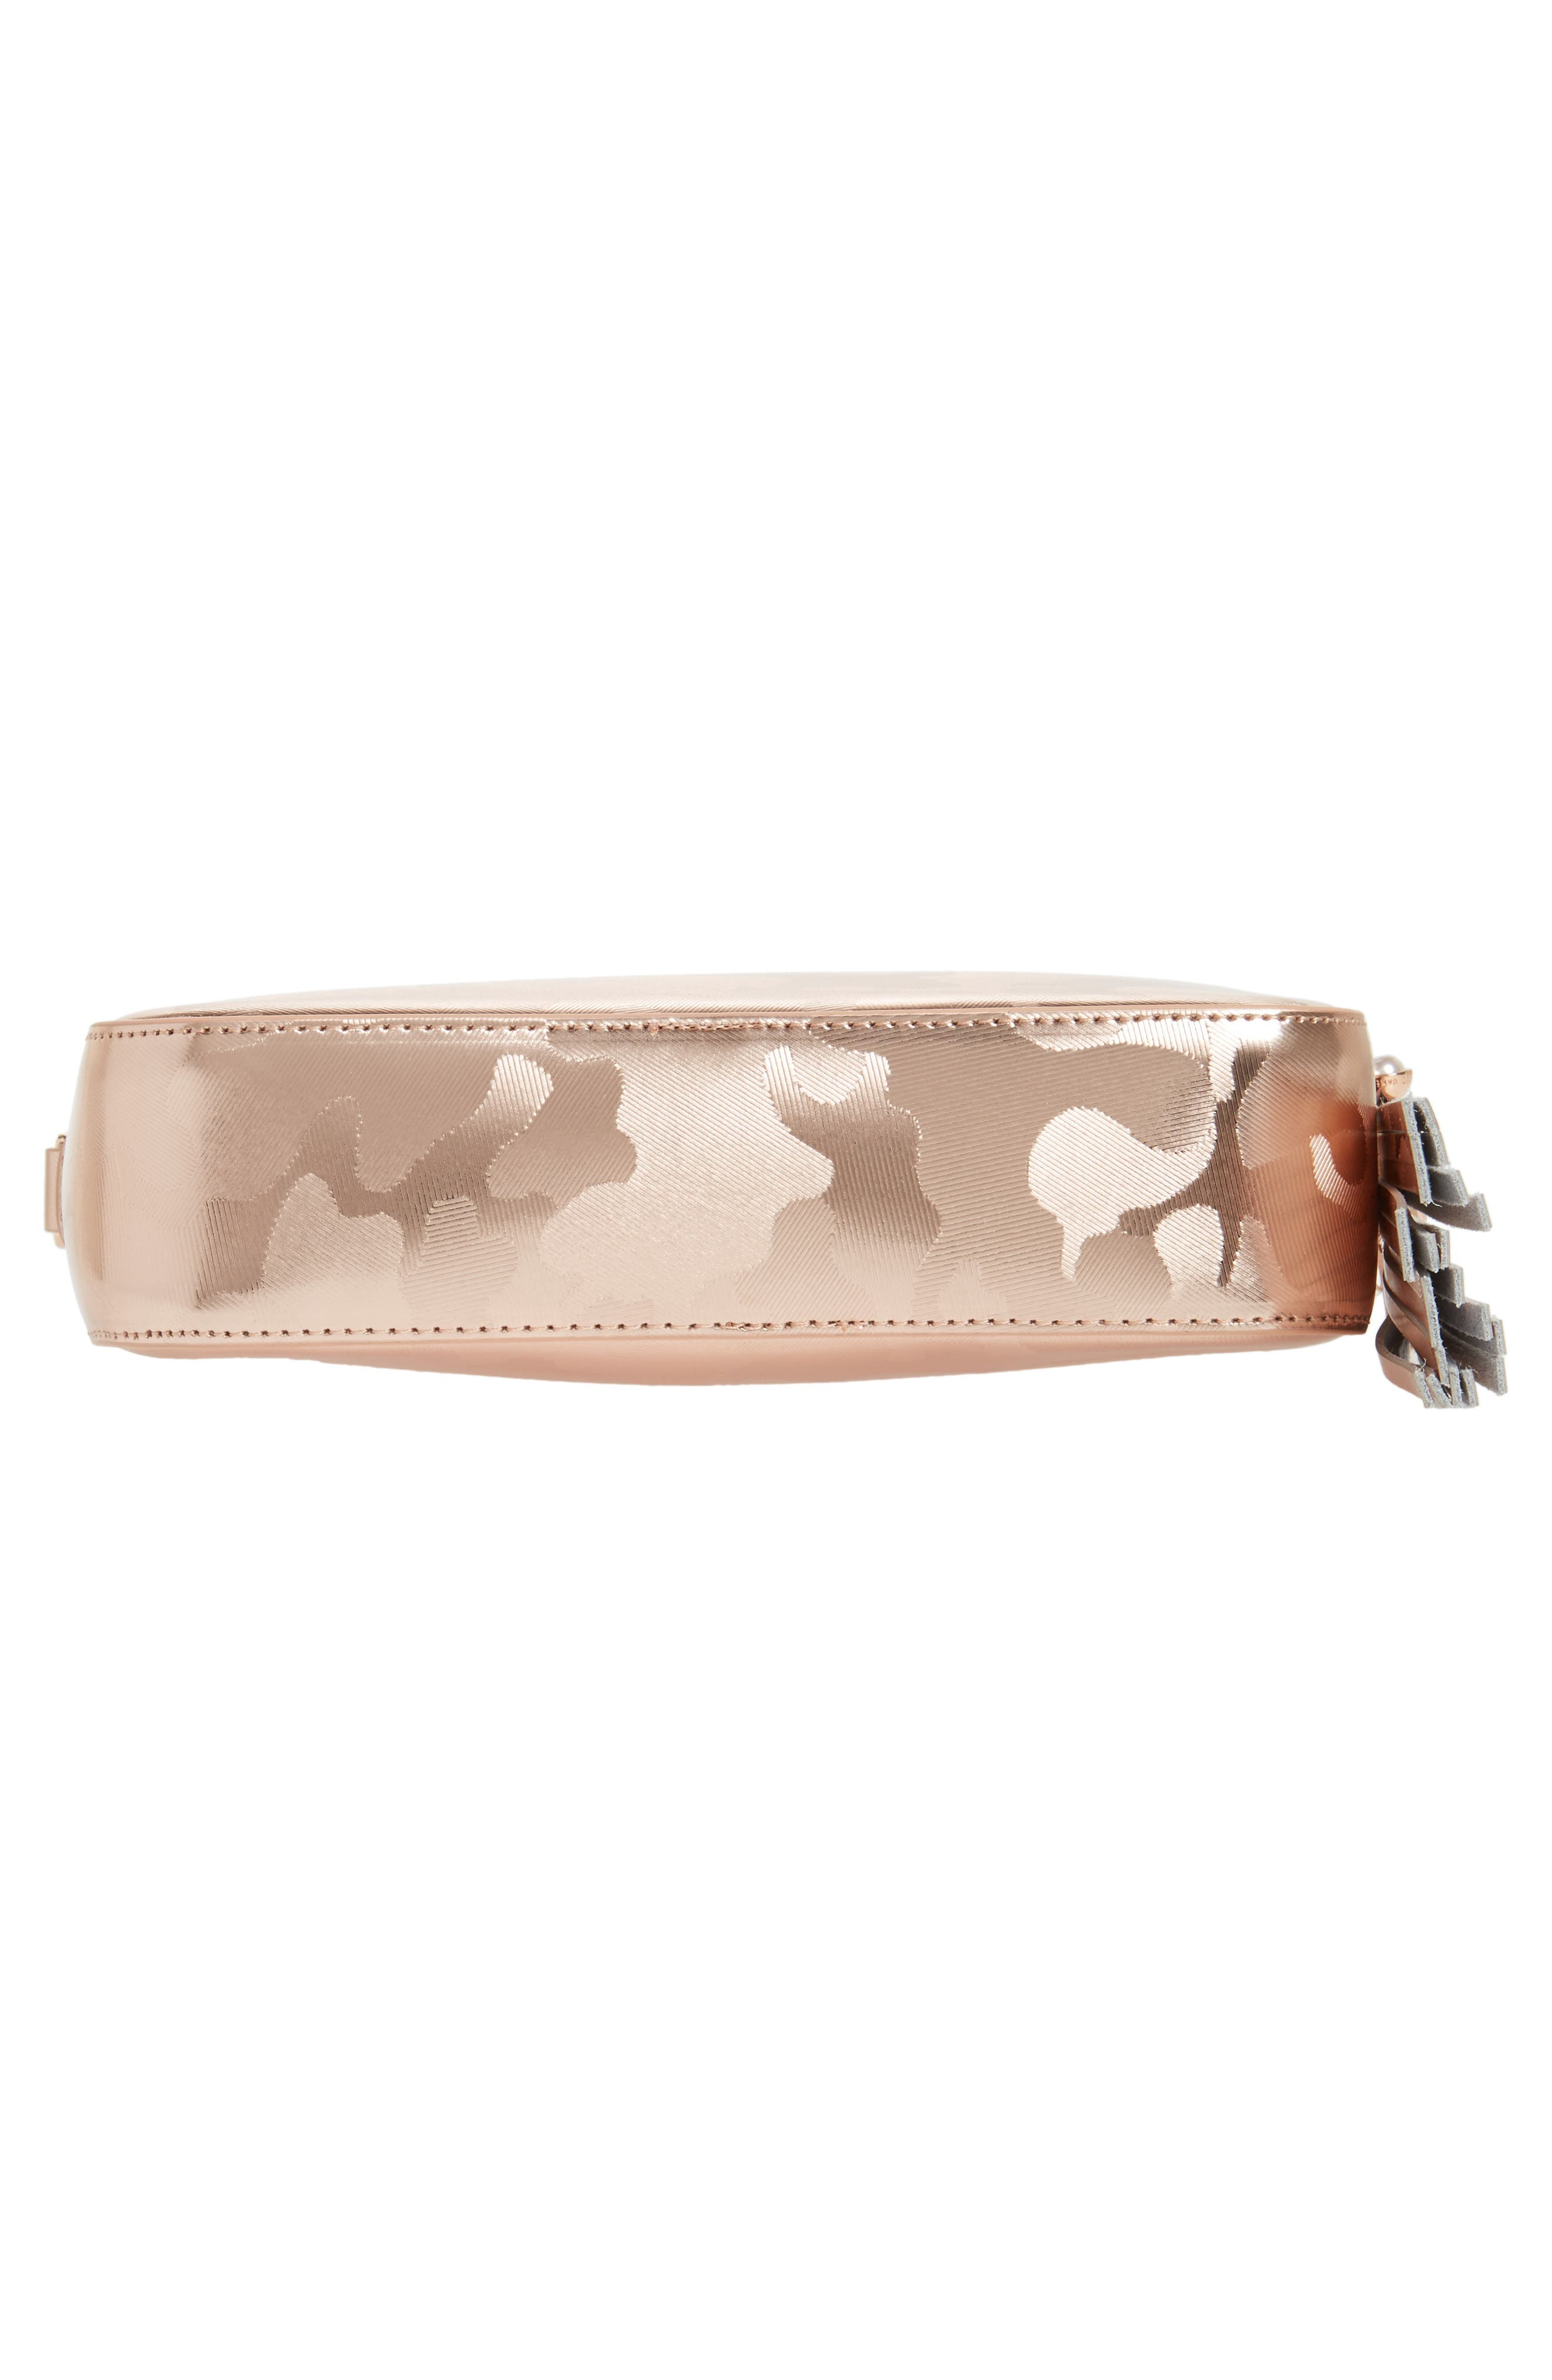 Camouflage Leather Camera Bag,                             Alternate thumbnail 6, color,                             650